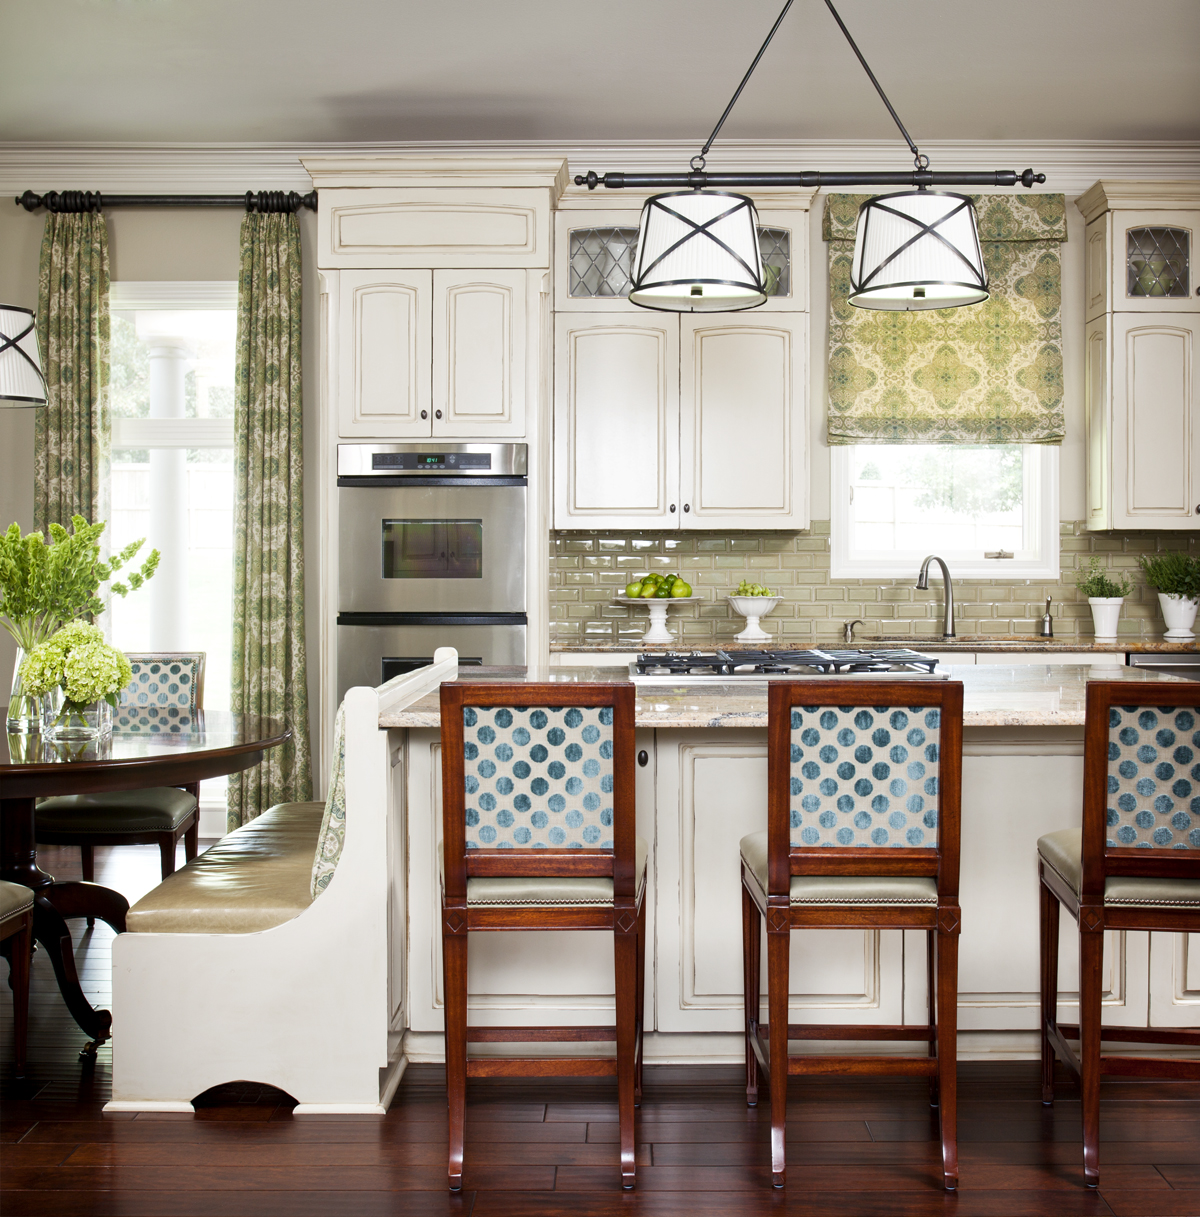 Kitchen Banquette Design Plans Cozy Dining Space With Banquette Seating Ideas Homesfeed